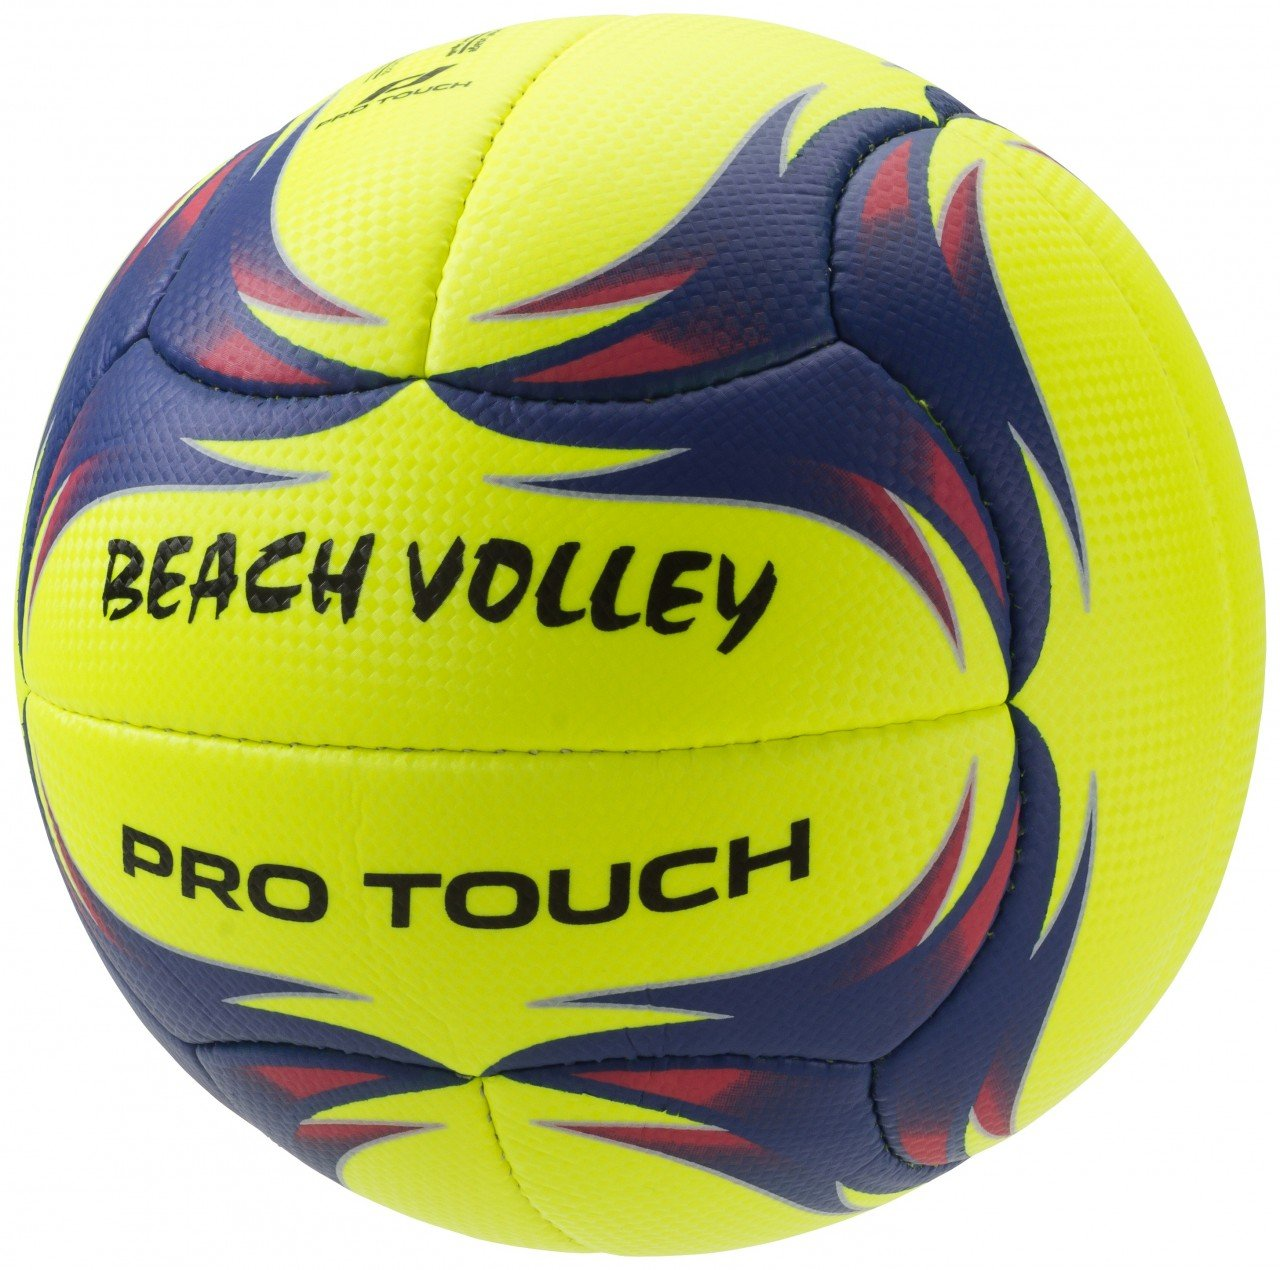 PRO TOUCH Volleyball de Beach Volley Beach Volleyball, Jaune/Violet, Taille Unique ADIL0|#adidas 185627